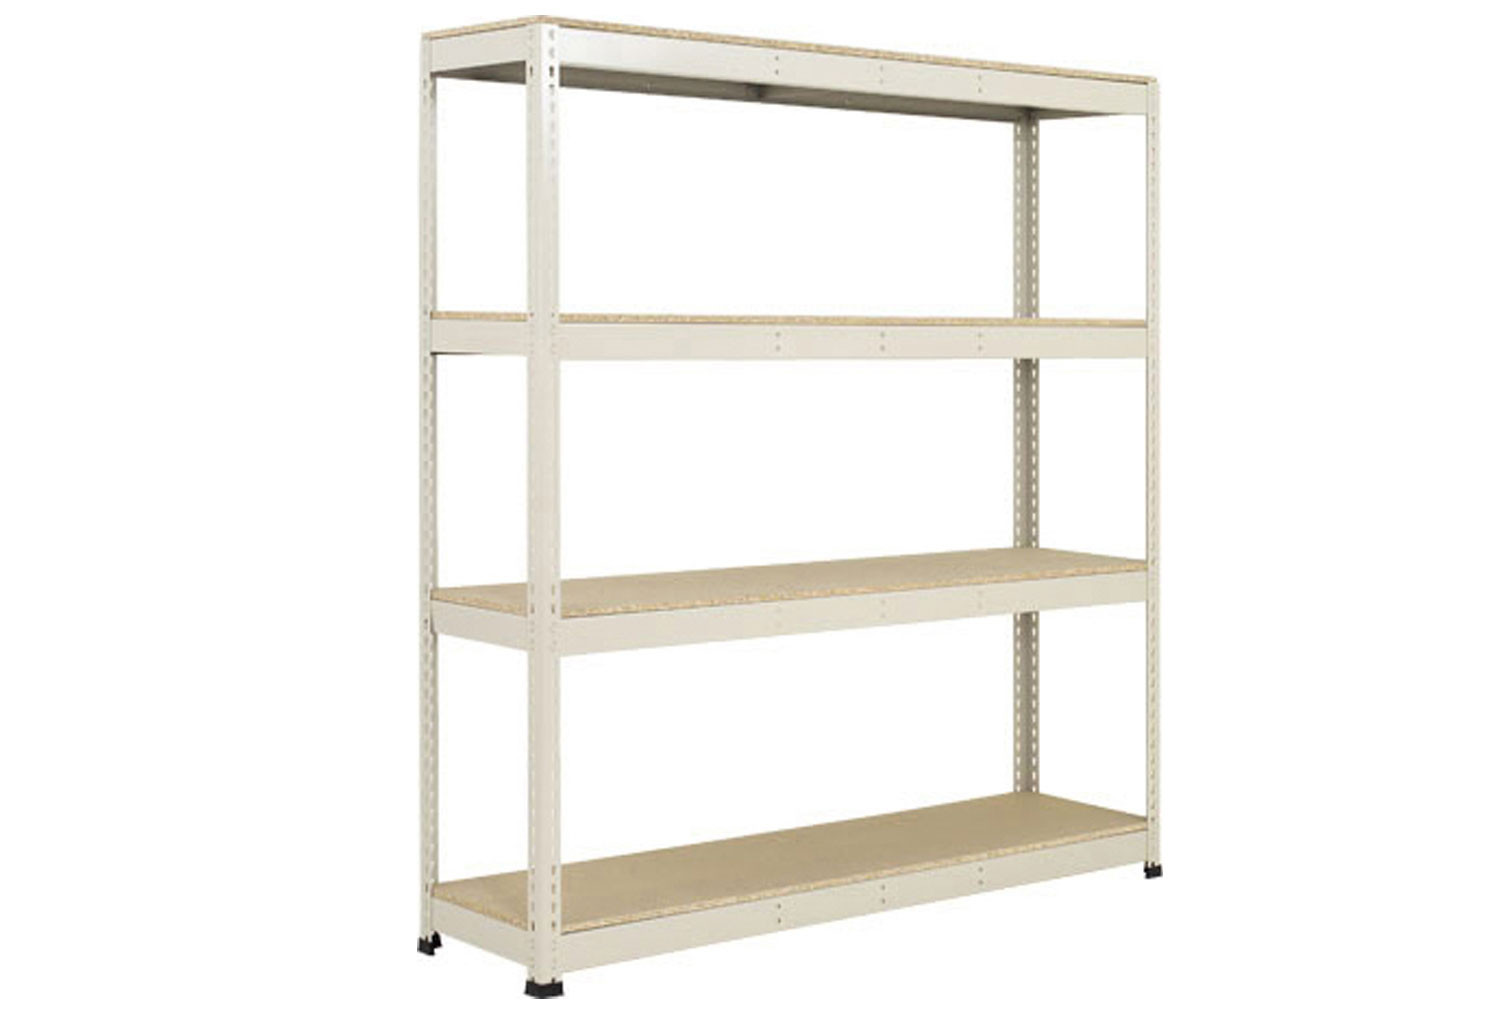 Rapid 1 Standard Shelving With 4 Chipboard Shelves 1525wx2440h (Grey)